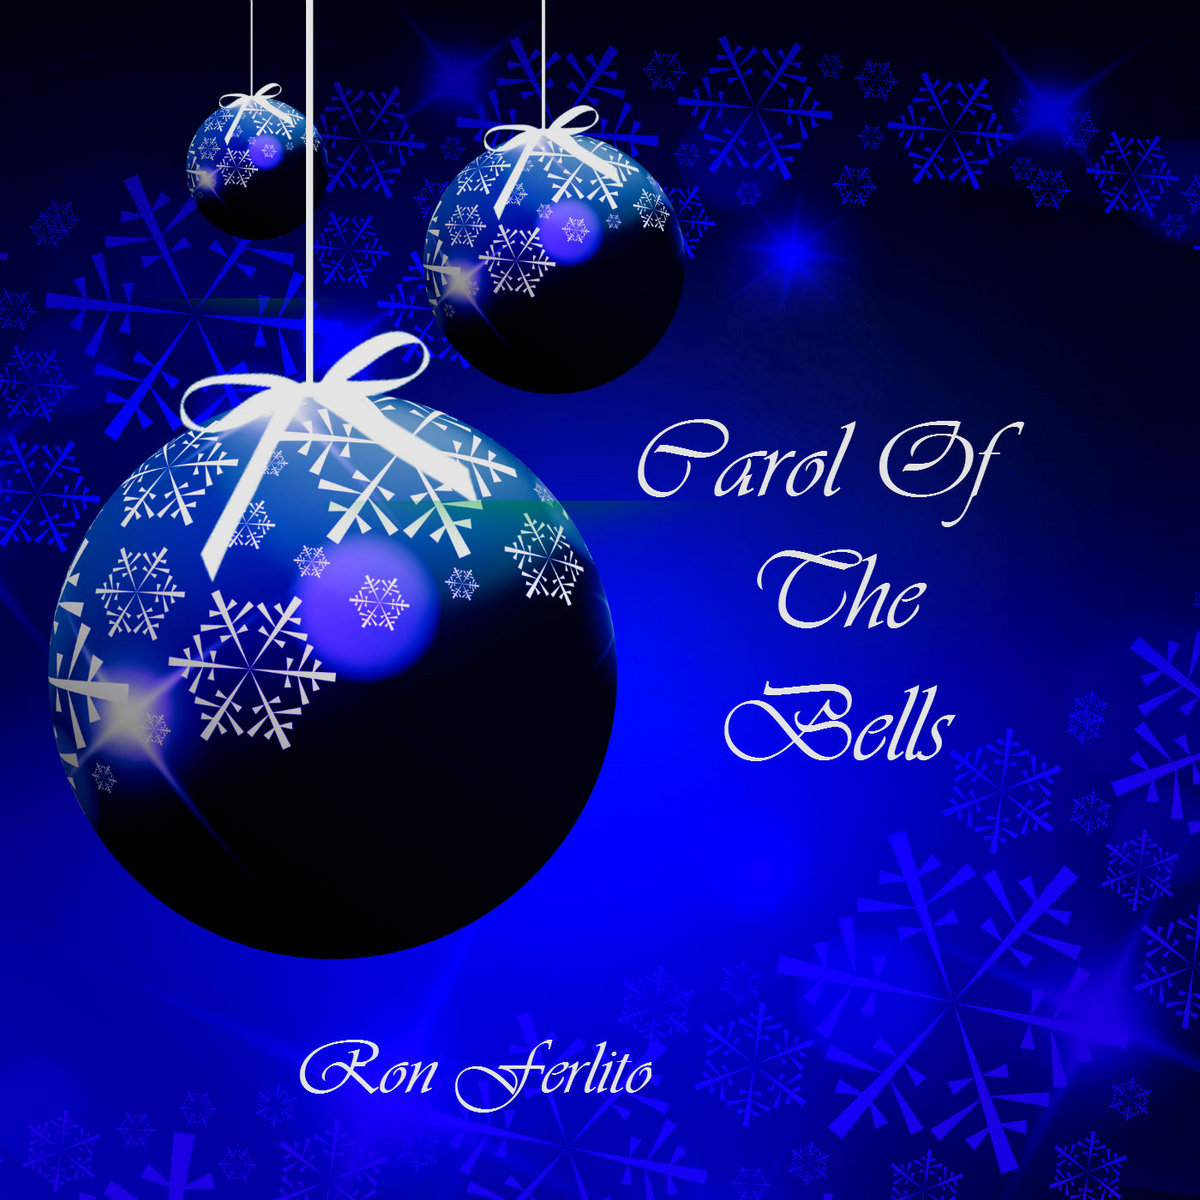 Carol Of The Bells (Digital Single) by Ron Ferlito